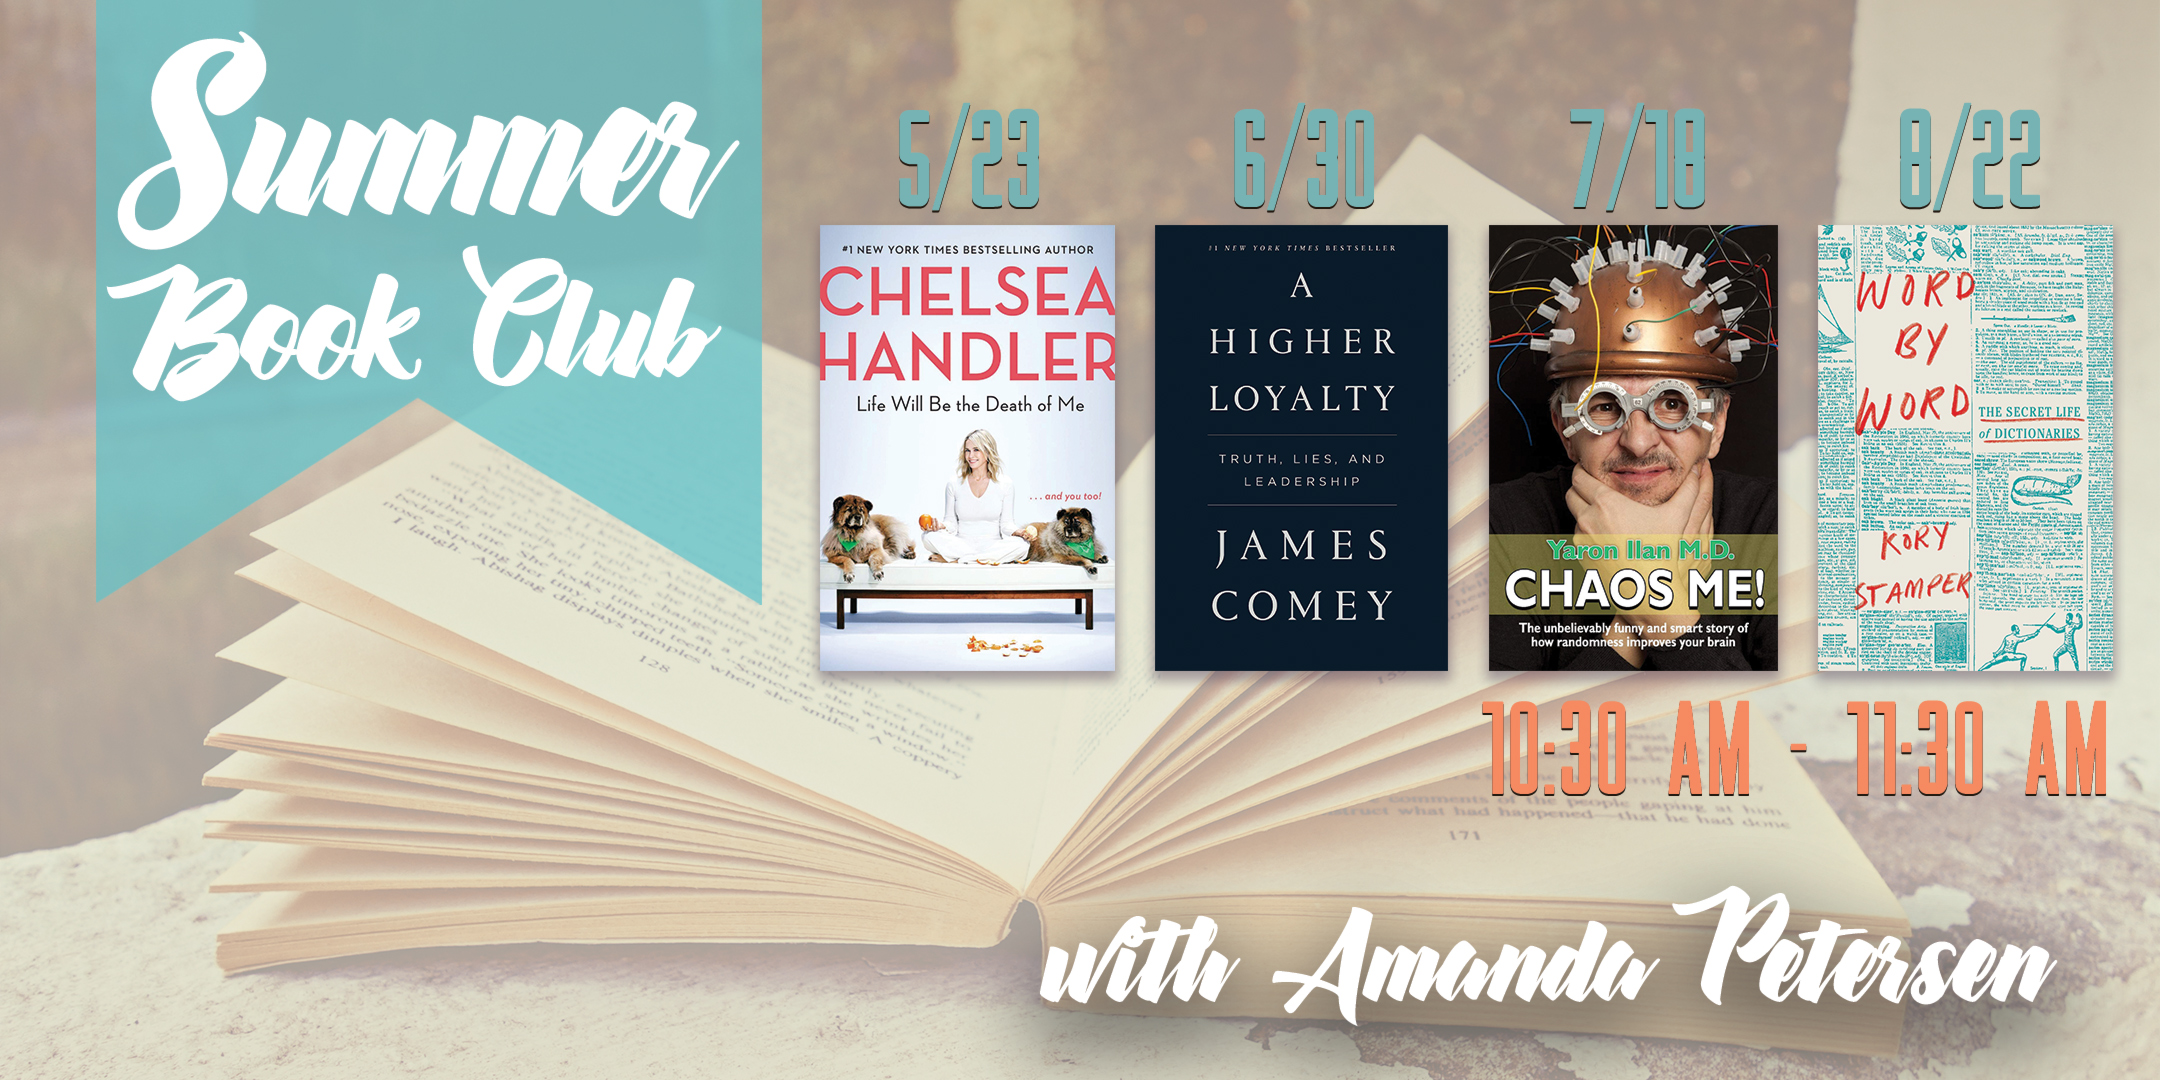 PoG_Eventbrite_Summer-Book-Club---All.jpg